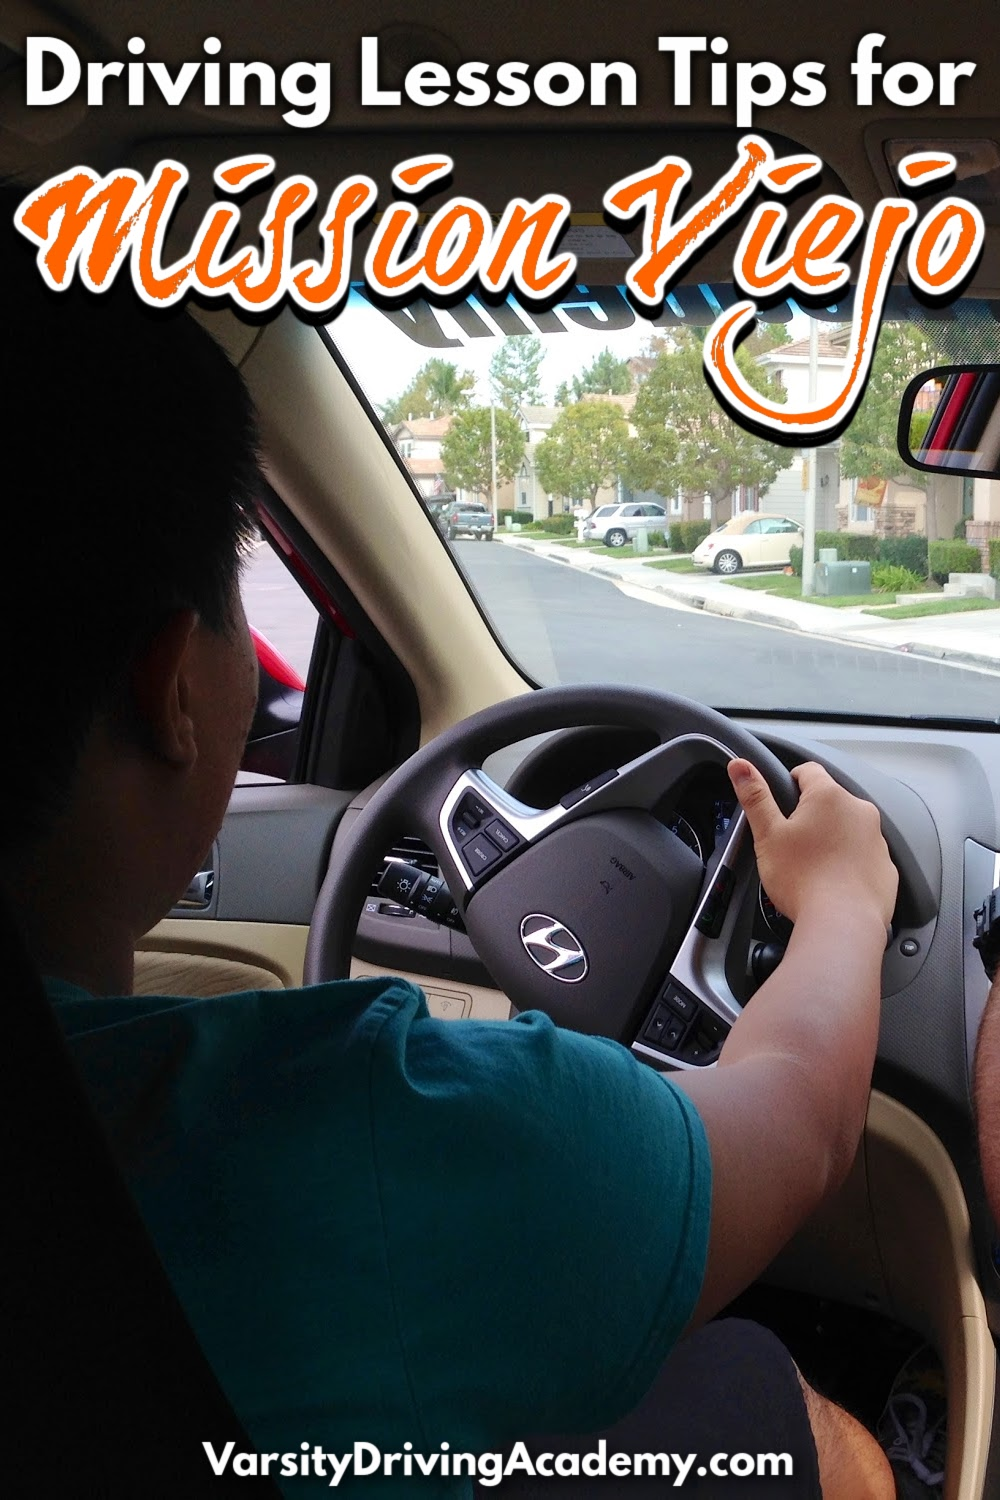 The best Mission Viejo driving lessons tips can help get you ready to learn how to drive safely and defensively with Varsity Driving Academy.